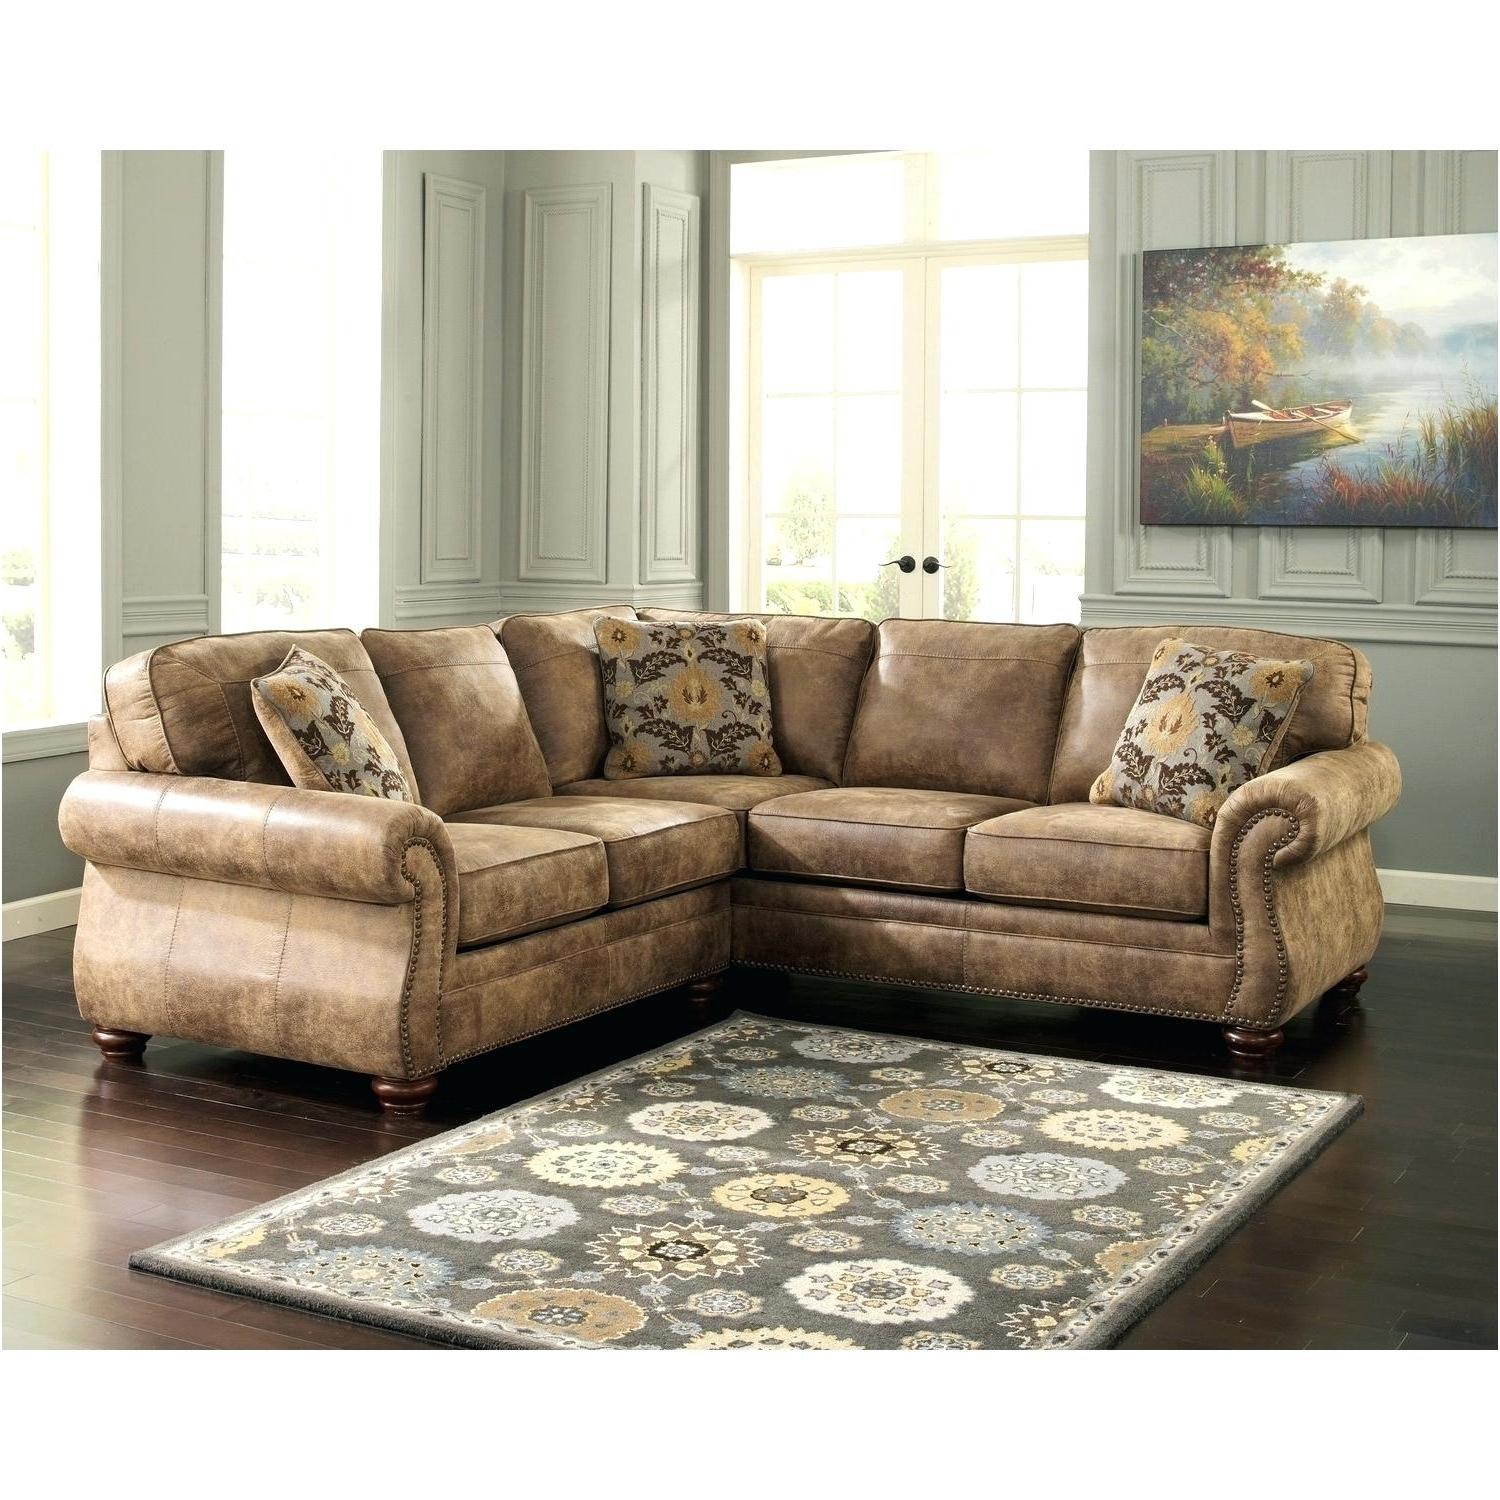 2018 Sectionals Sofa S Sofas Ikea For Sale Sectional Small Spaces Within Joplin Mo Sectional Sofas (View 2 of 15)